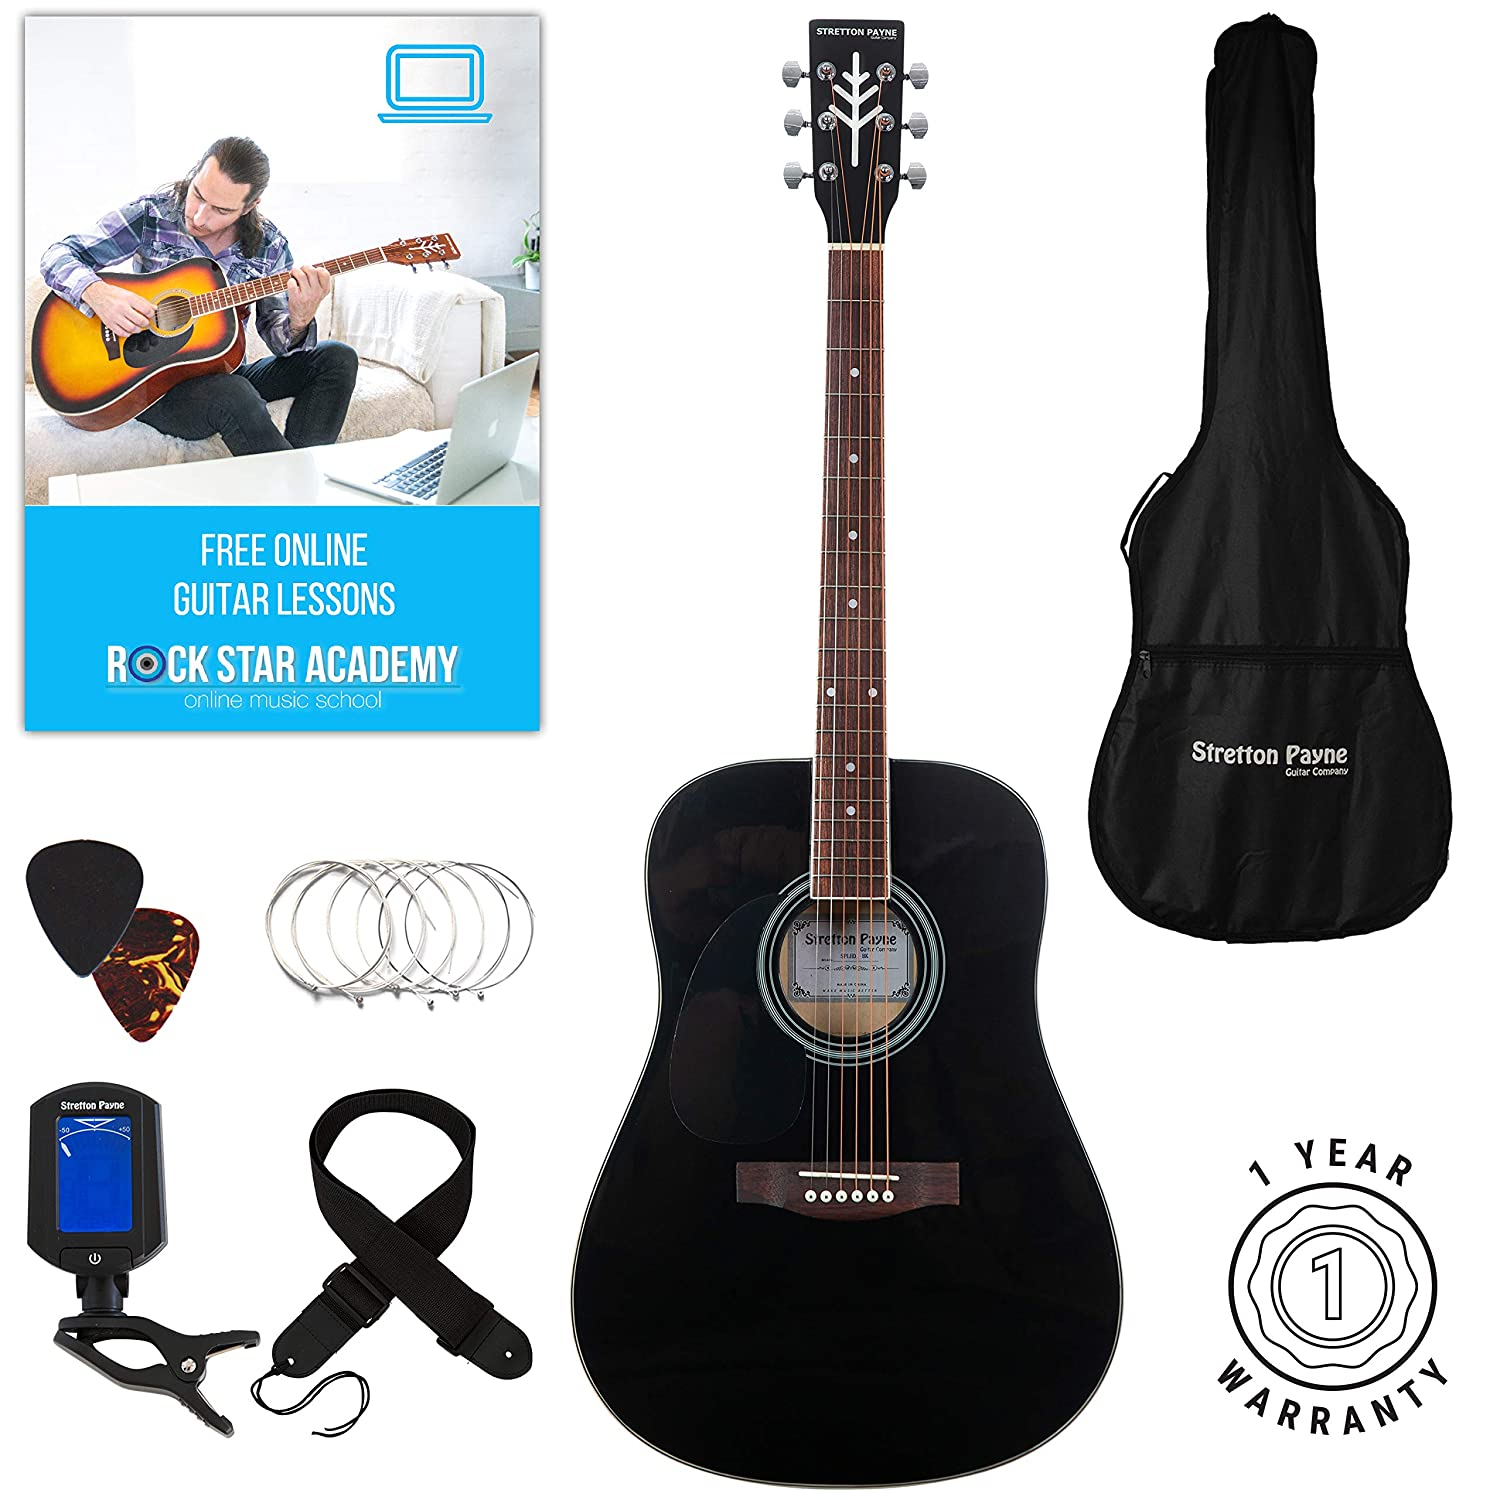 Stretton Payne LEFT HAND Dreadnought Full Sized Steel String Acoustic Guitar PACKAGE D1 Sunburst SPLHD1PACKSB